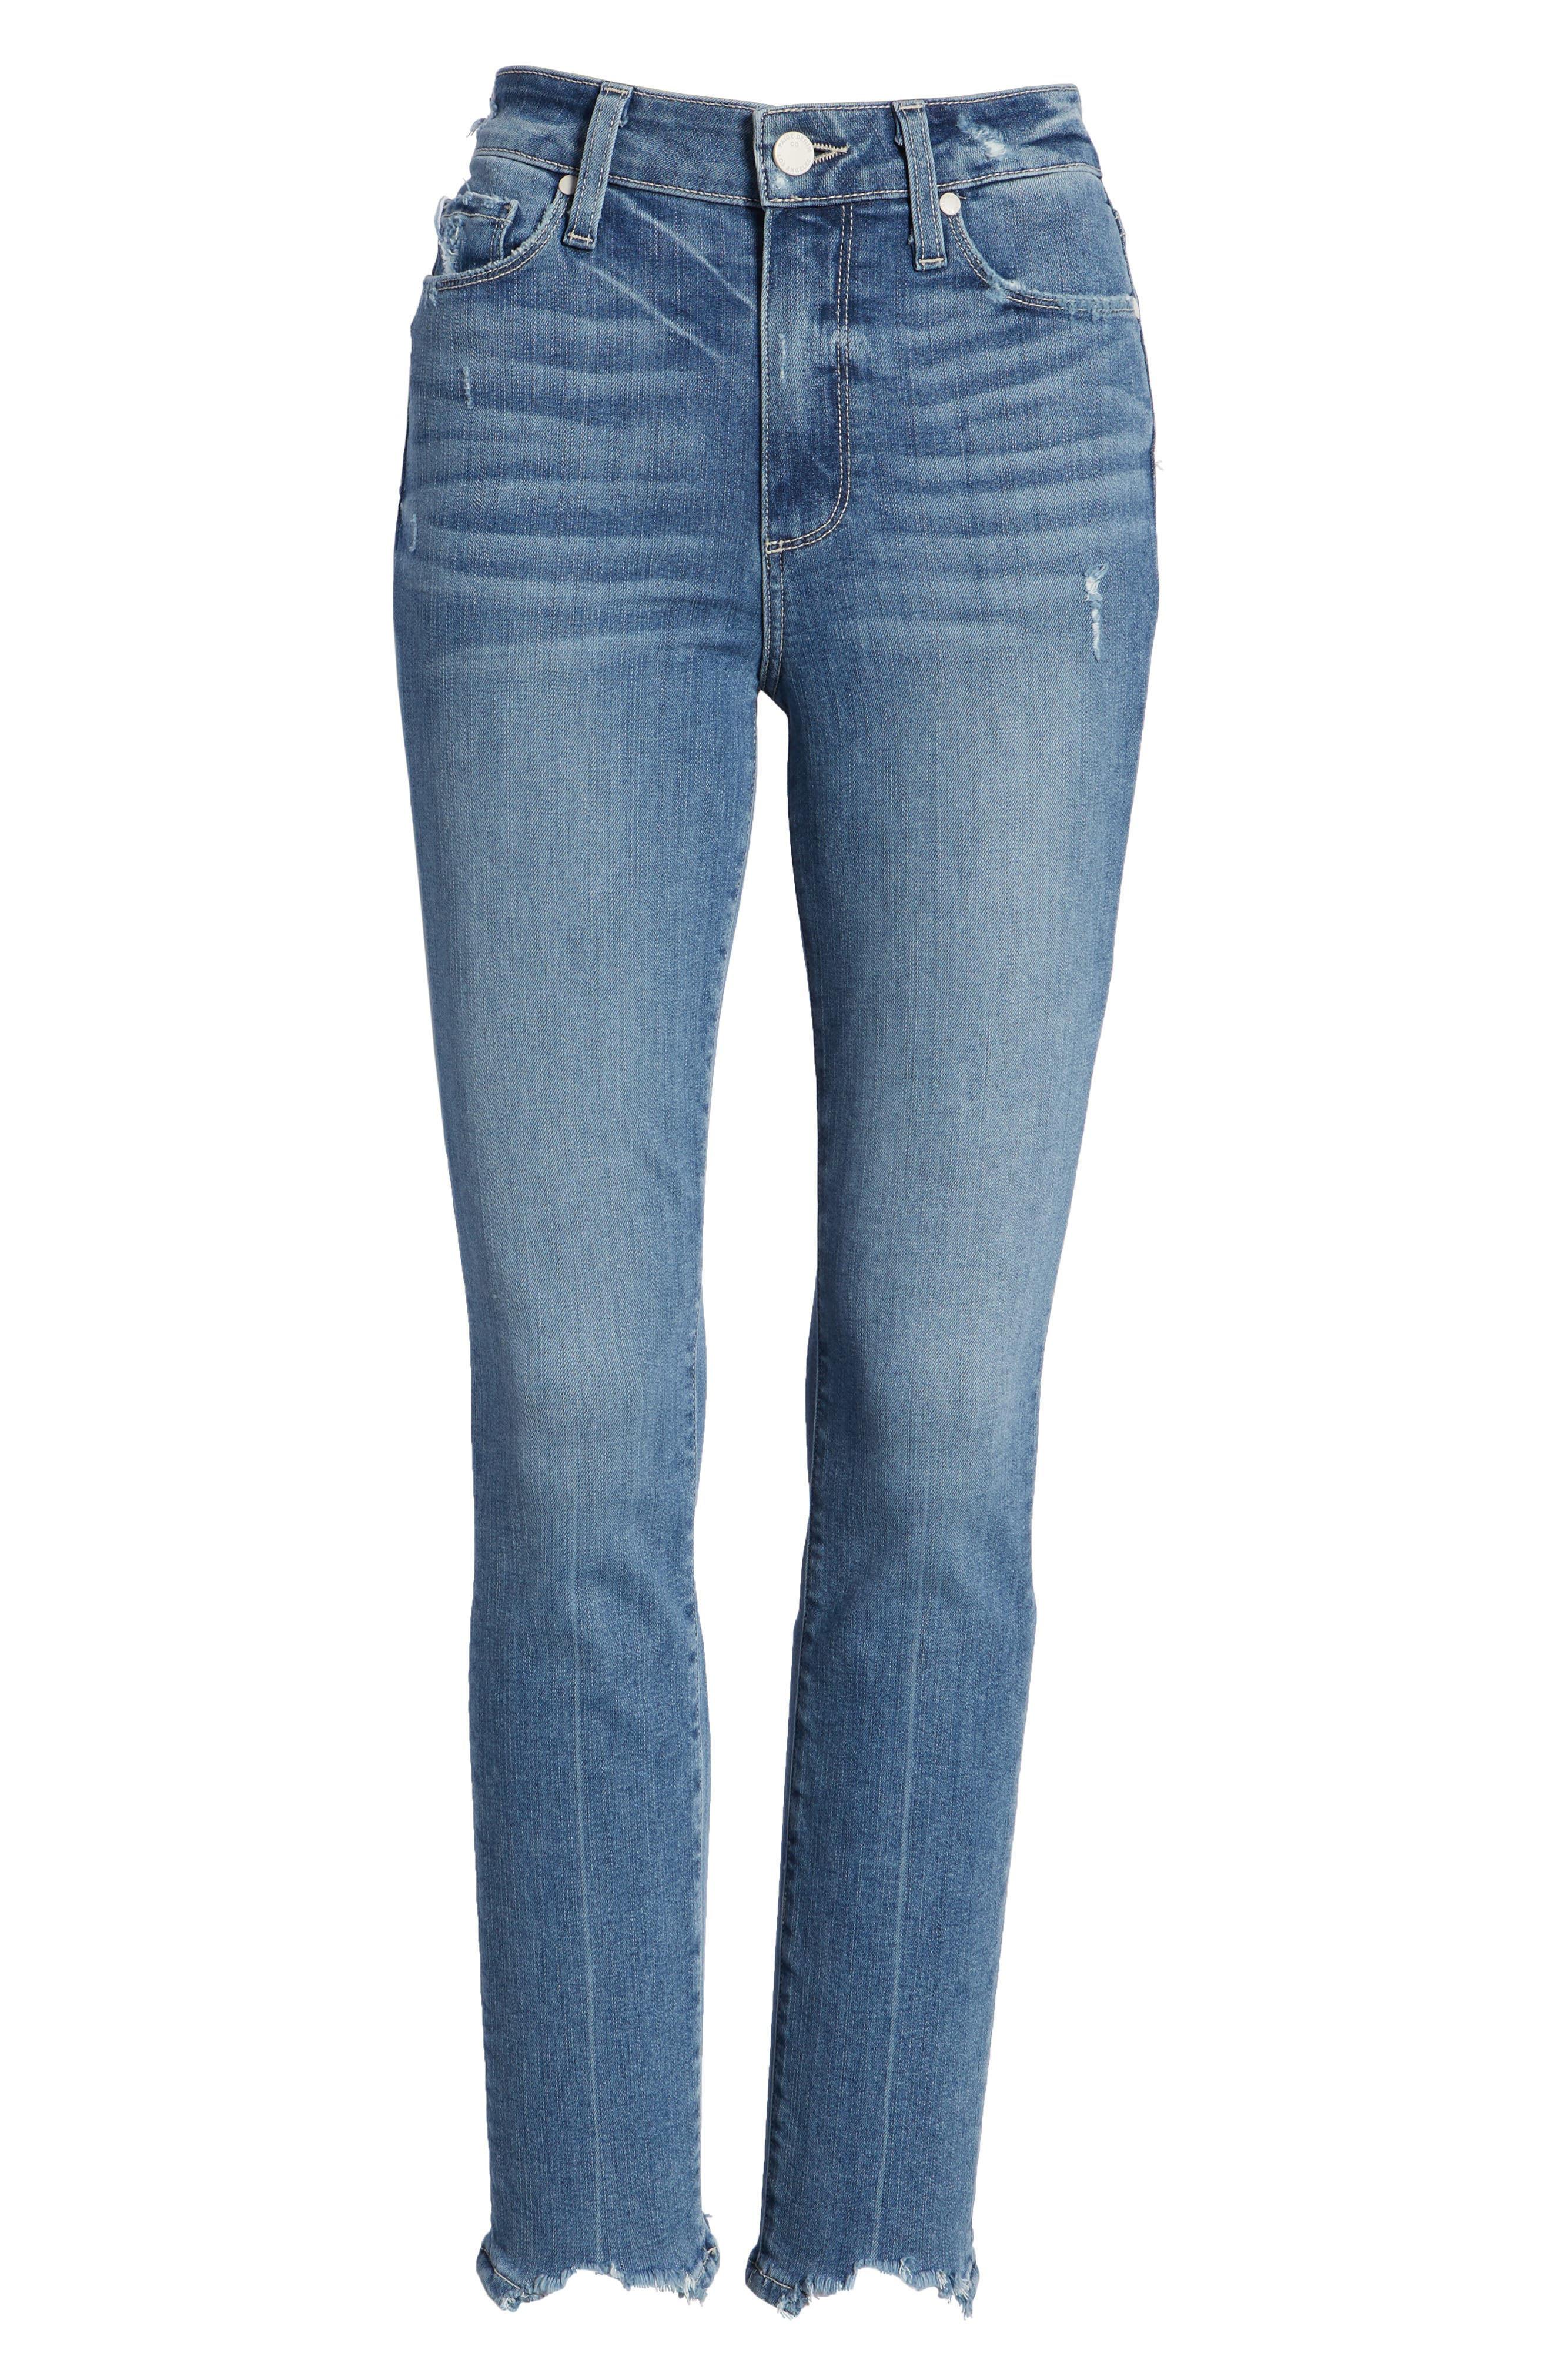 Transcend Vintage - Hoxton High Waist Ankle Skinny Jeans,                             Alternate thumbnail 9, color,                             Zahara